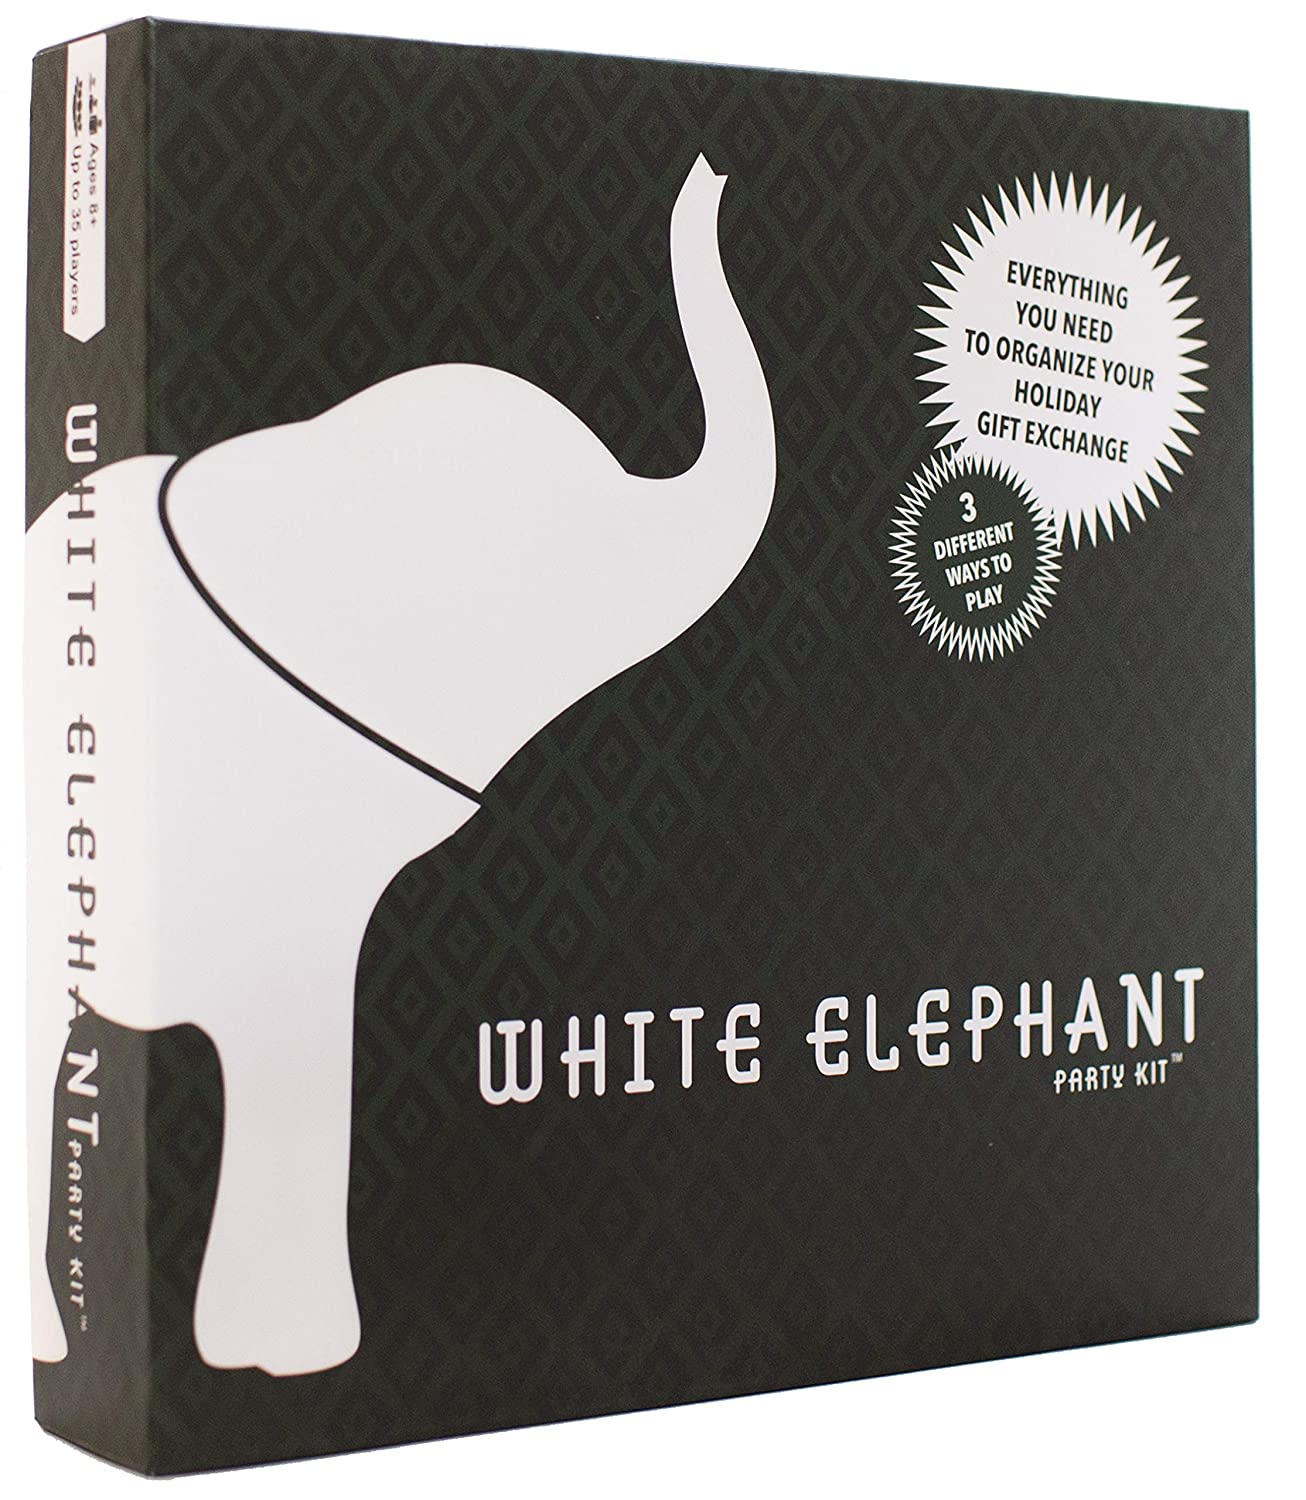 White Elephant Party Kit The Best Gift to Organize The Gift ...